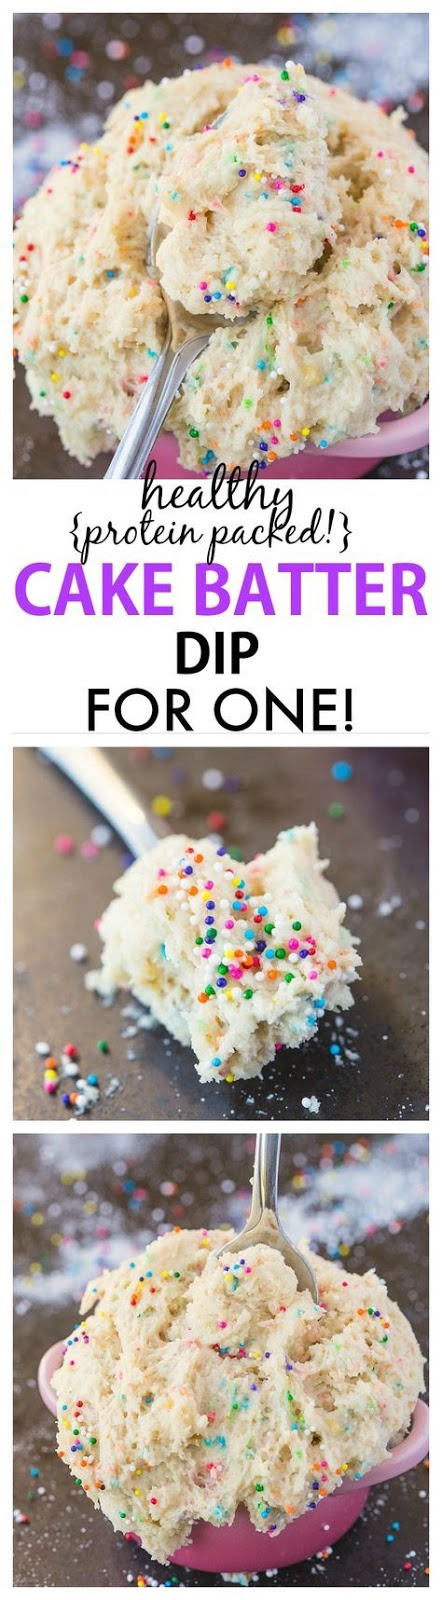 Healthy Cake Batter Dip For One